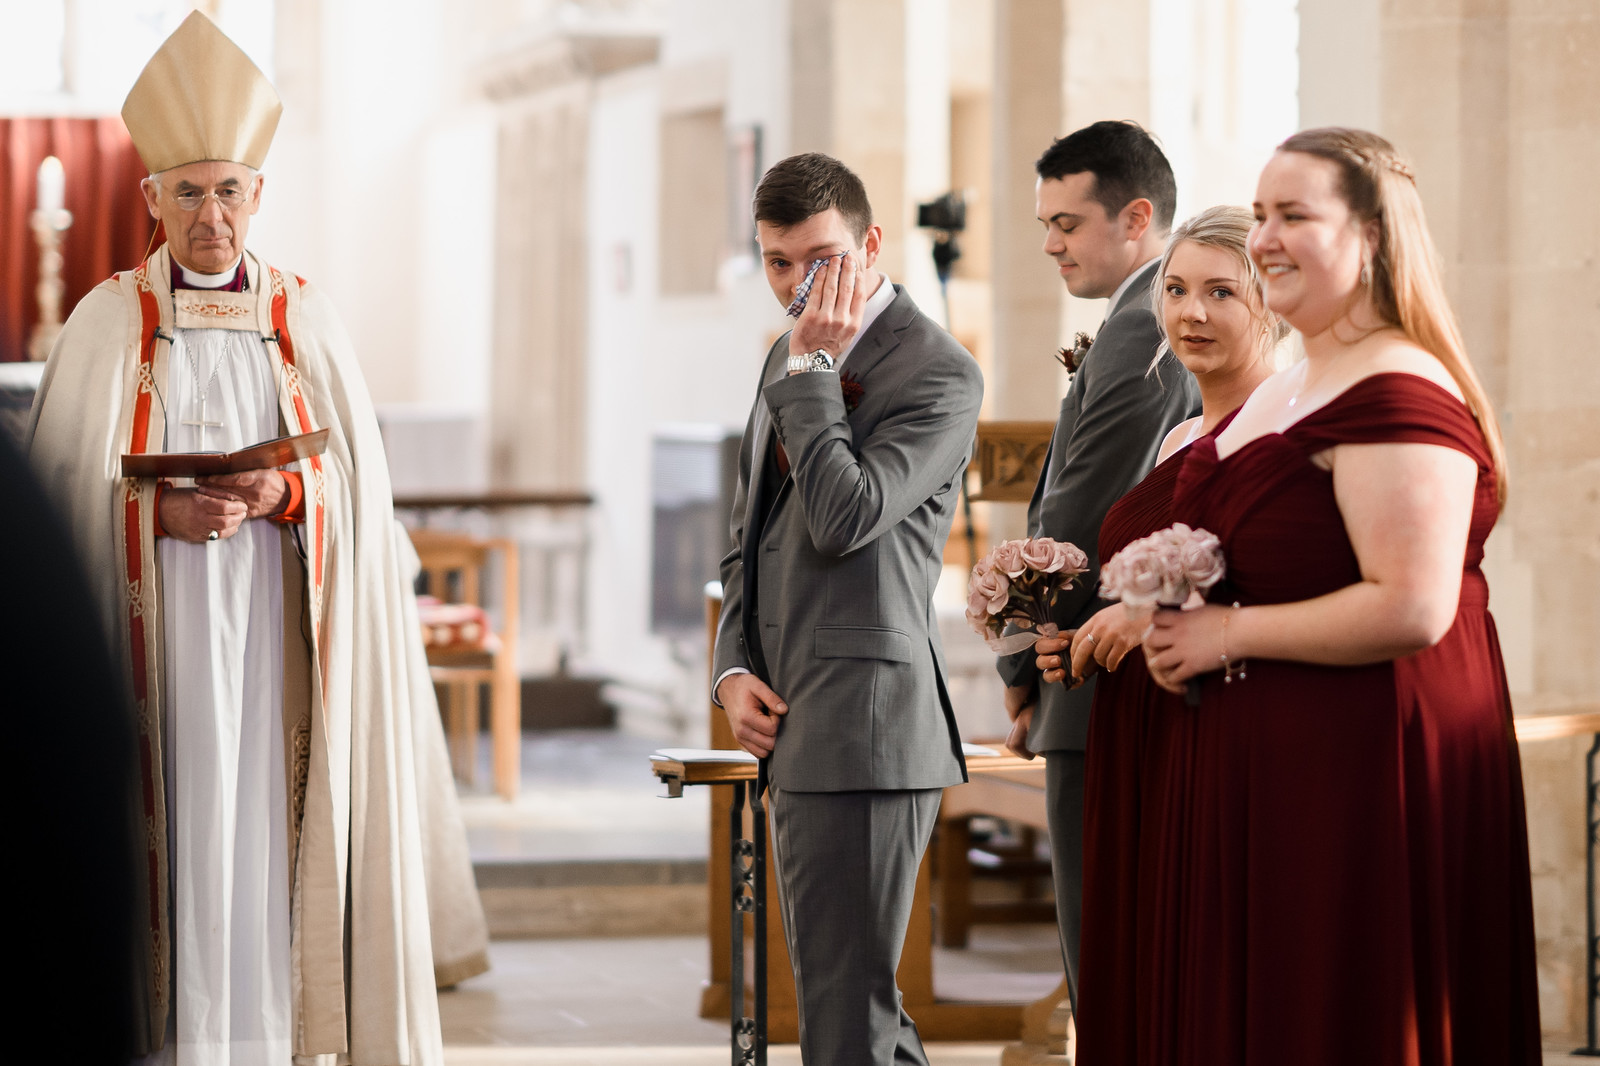 Groom wipes his tears away as his bride walks down the aisle| Cotswold Wedding Venue